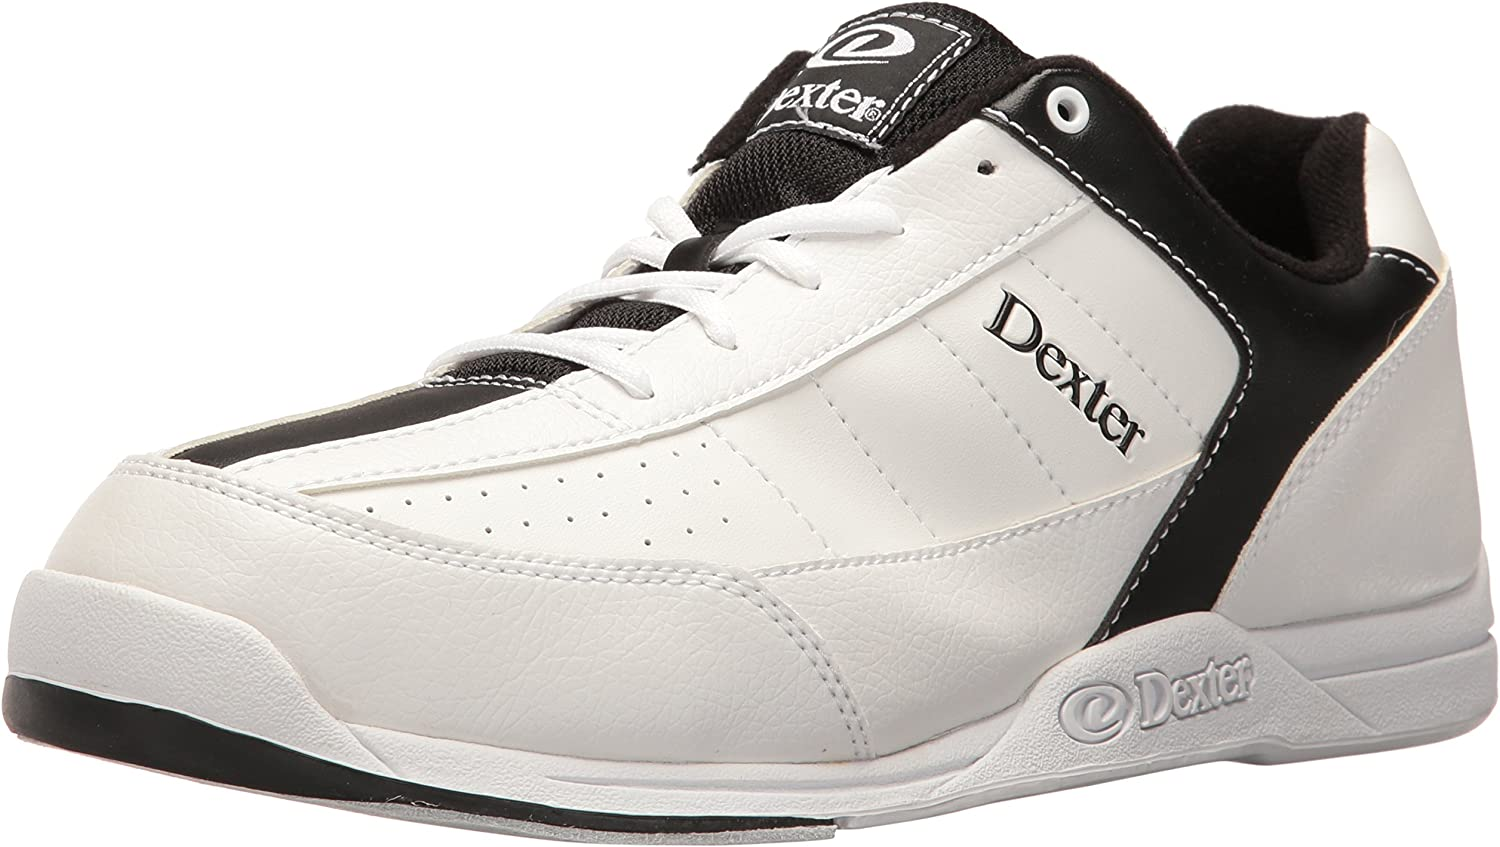 5.5 US 7 UK Dexter Mens Ricky III Bowling Shoes-Black//Red